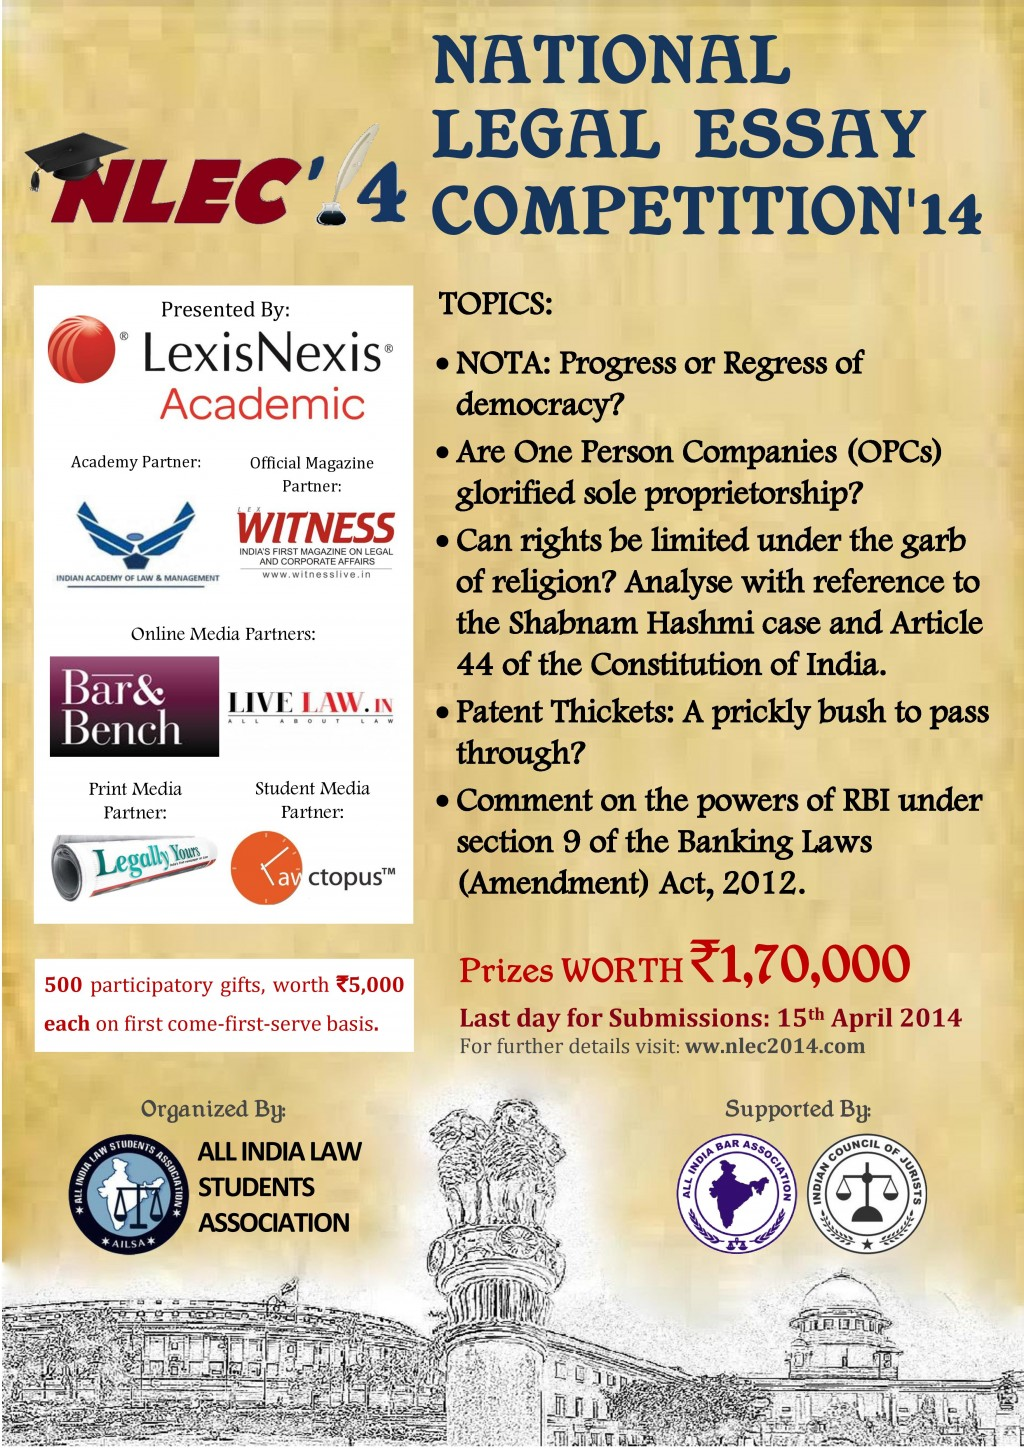 008 Essay Writing Competitions In India Custom Paper Academic Competition For College Students P Topics Contests Imposing 2014 Maryknoll Contest Winners Large